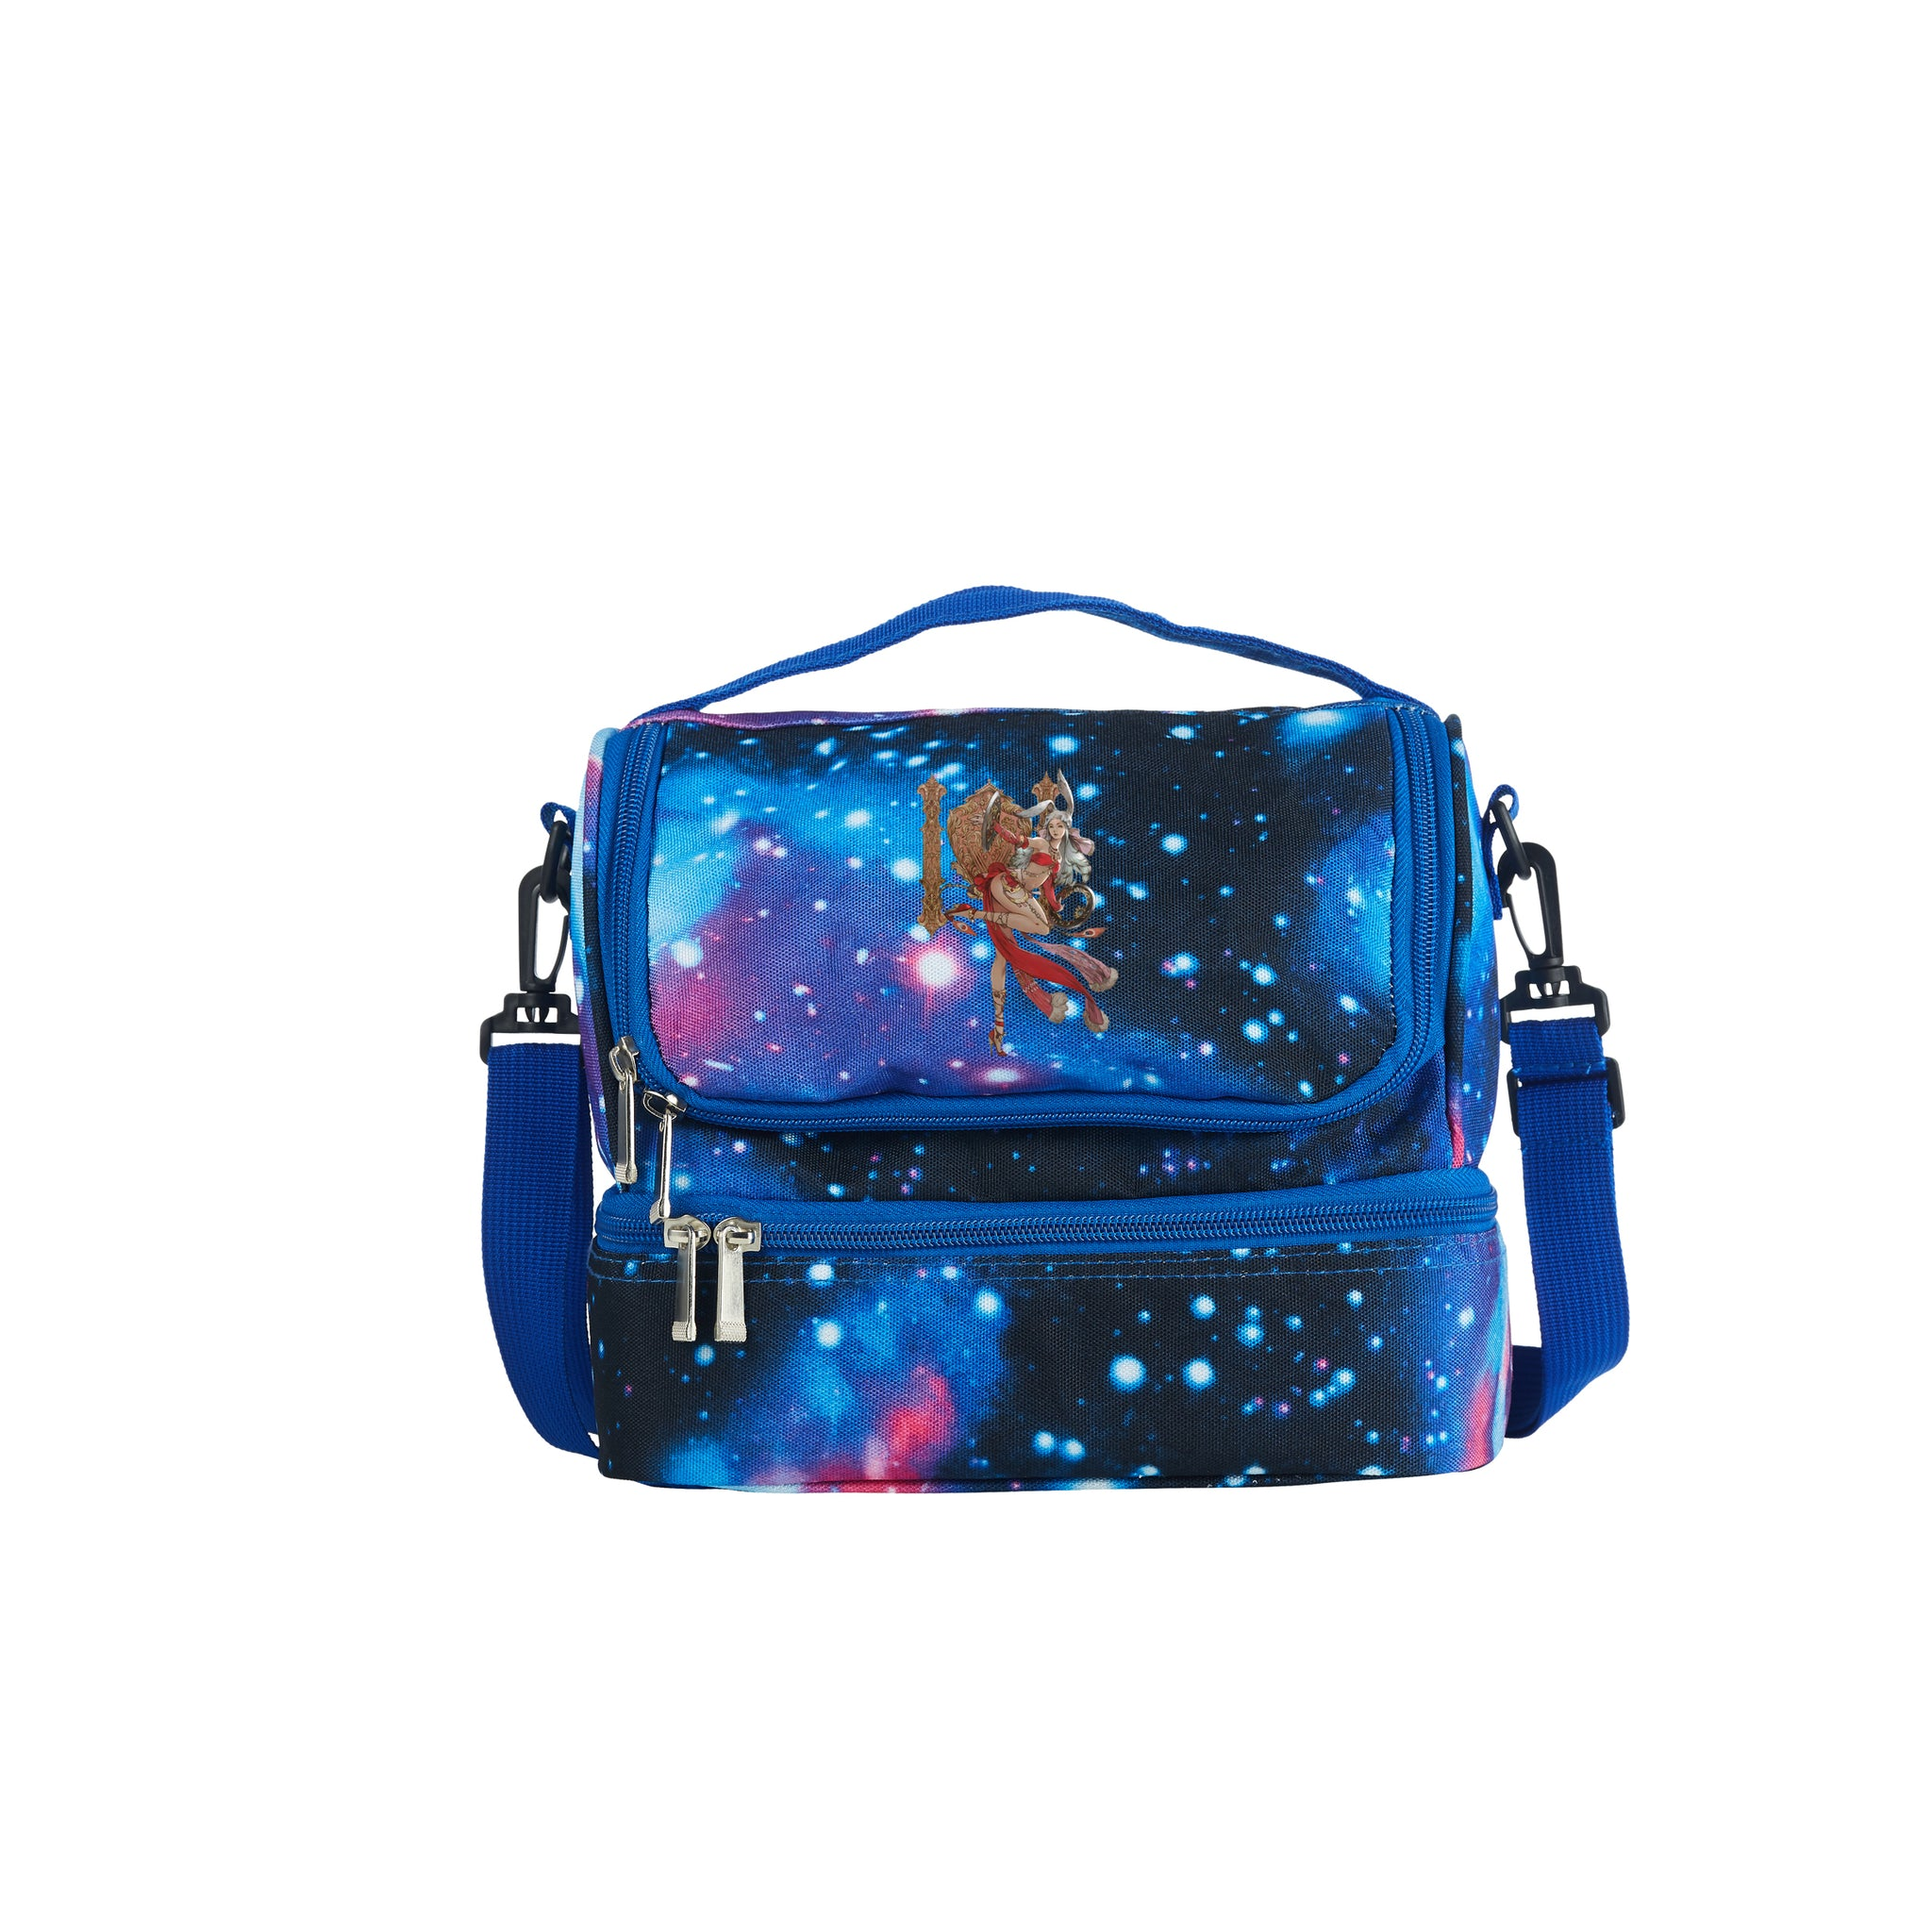 2019 Final Fantasy XIV Shadowbringers Series Two Compartment Galaxy Lunch Bag